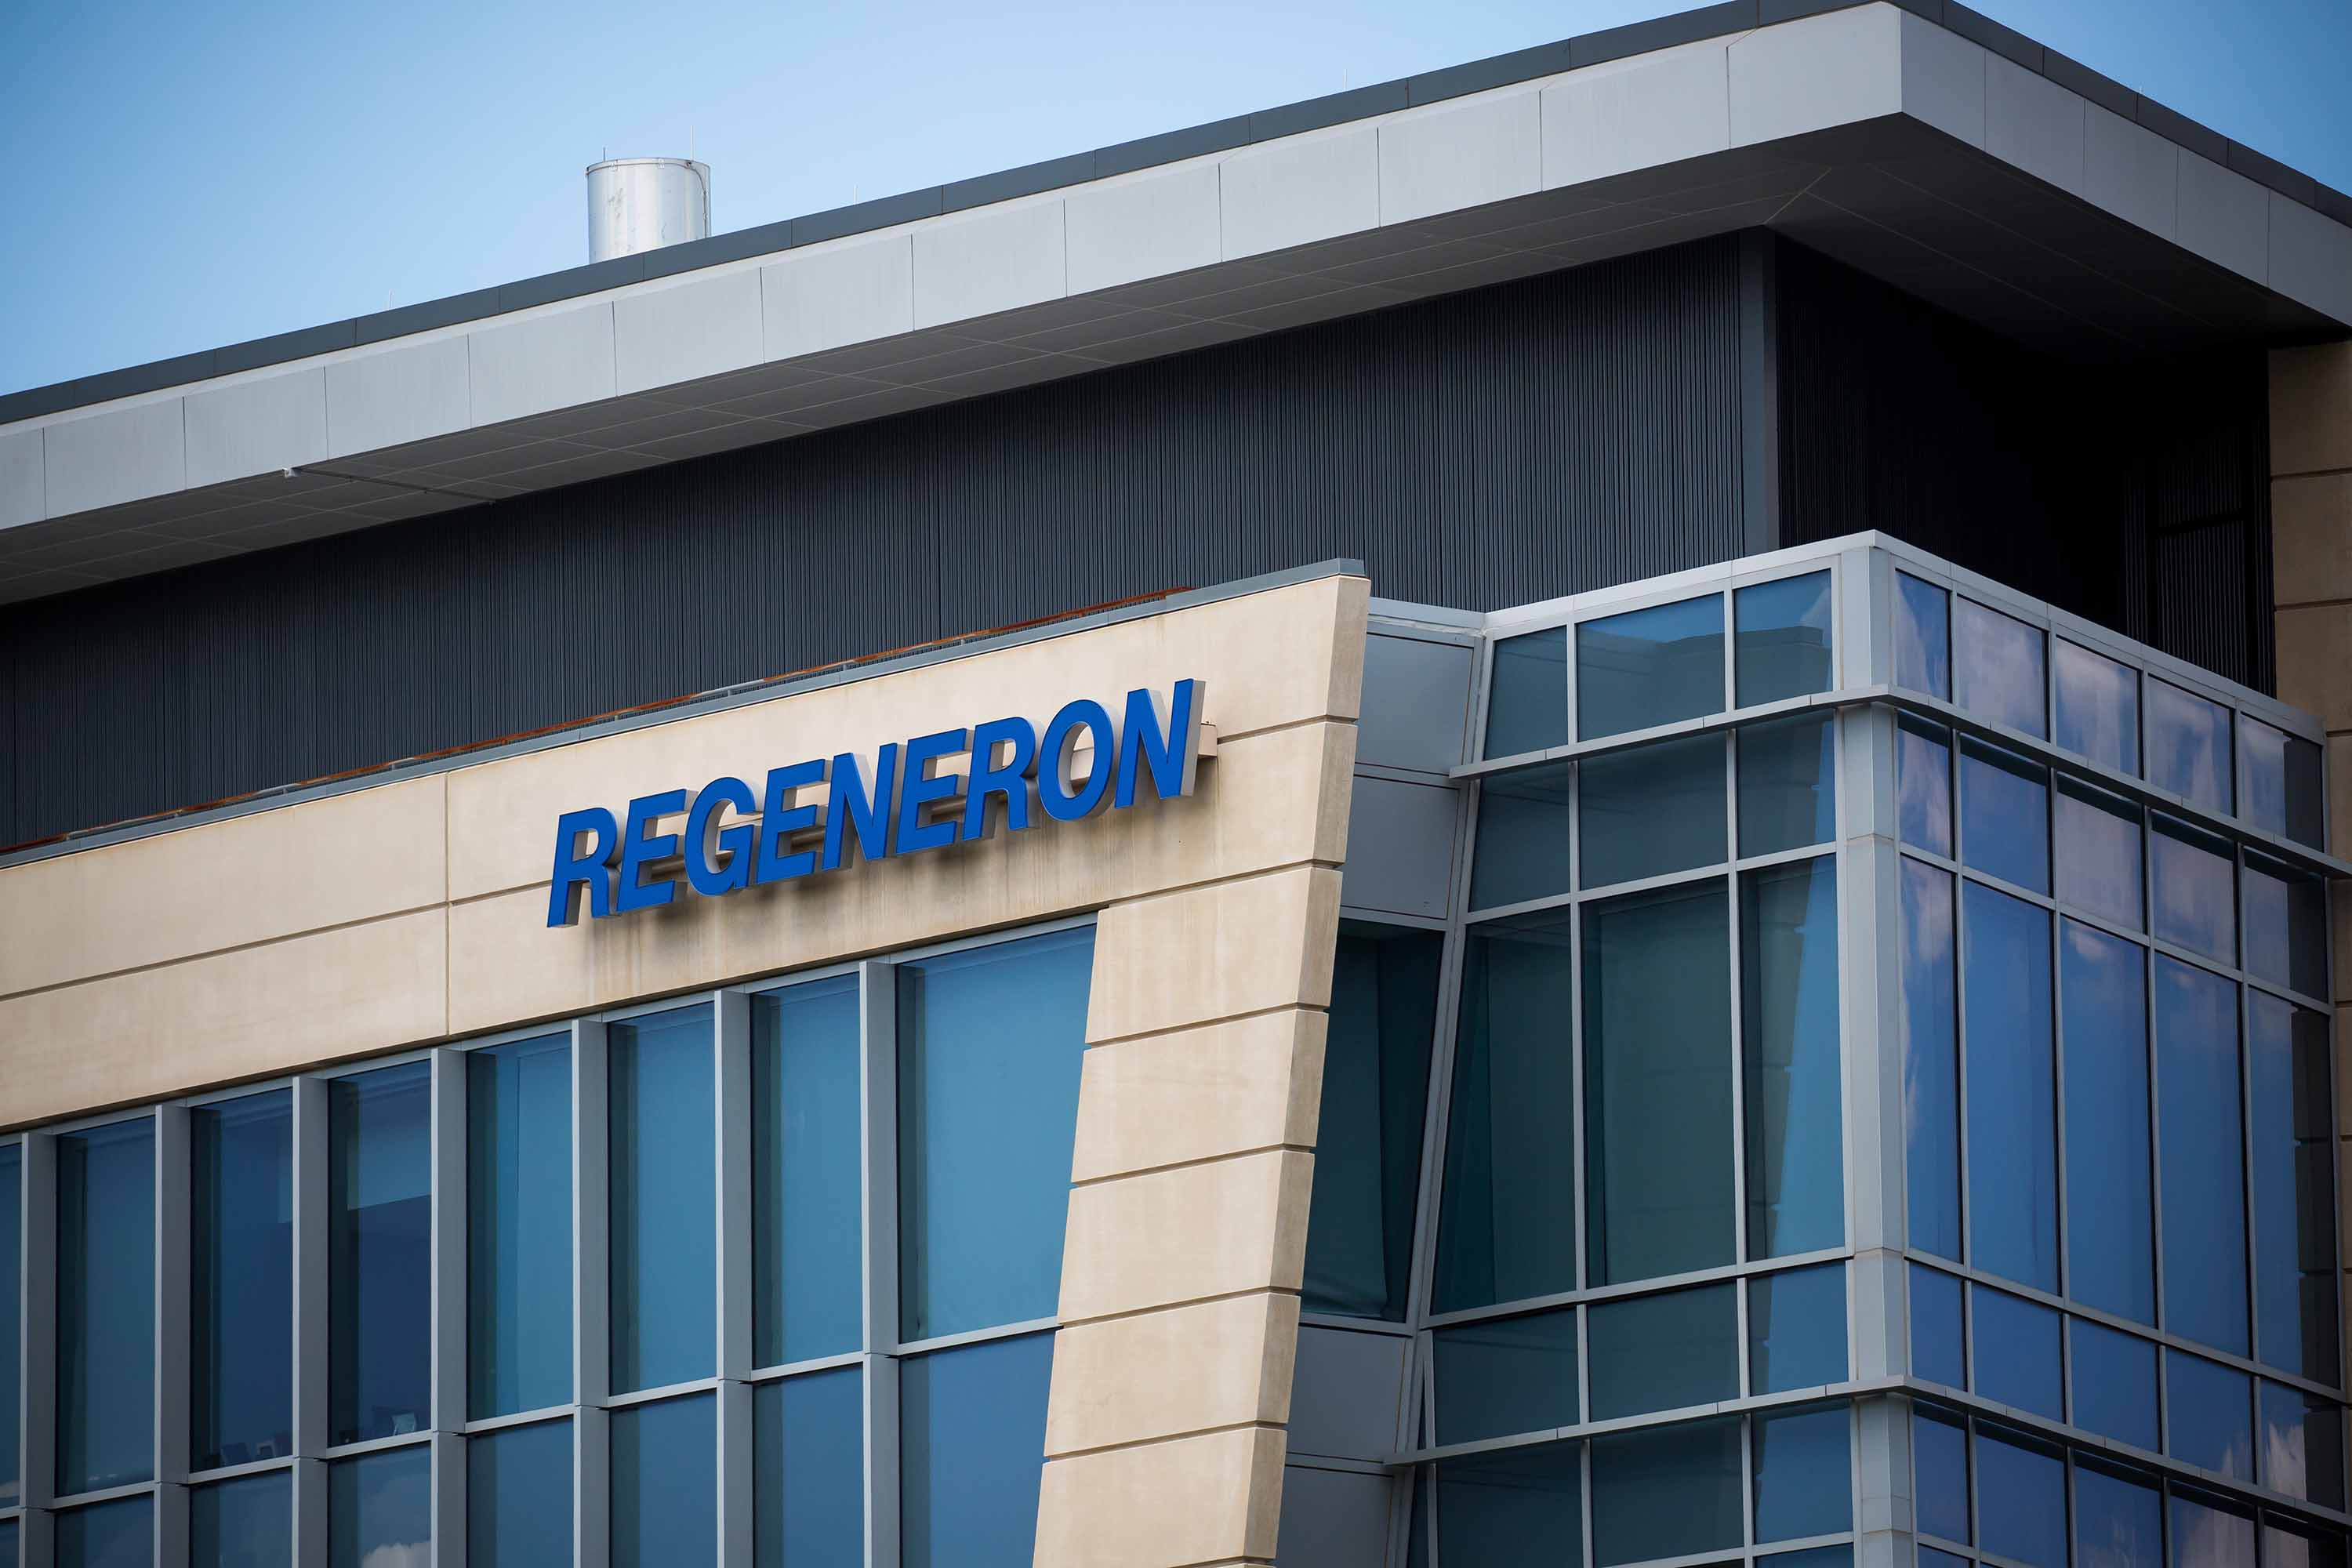 Regeneron Pharmaceuticals Inc. signage is displayed outside their headquarters in Tarrytown, New York, on June 12,